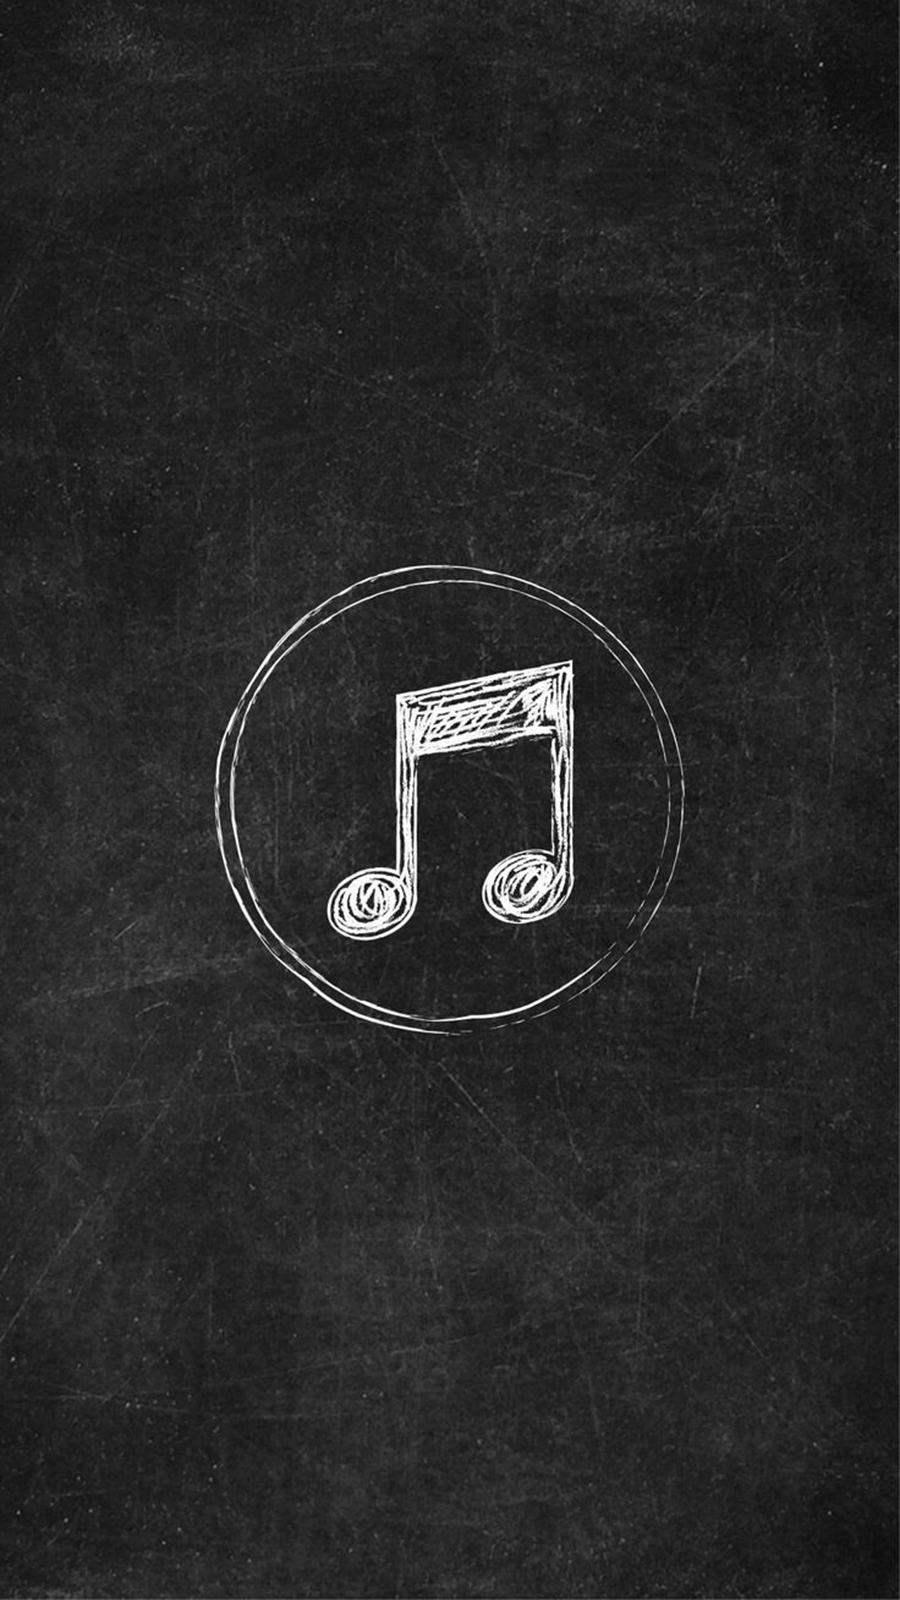 Music Logo Wallpapers Free Download For Mobile